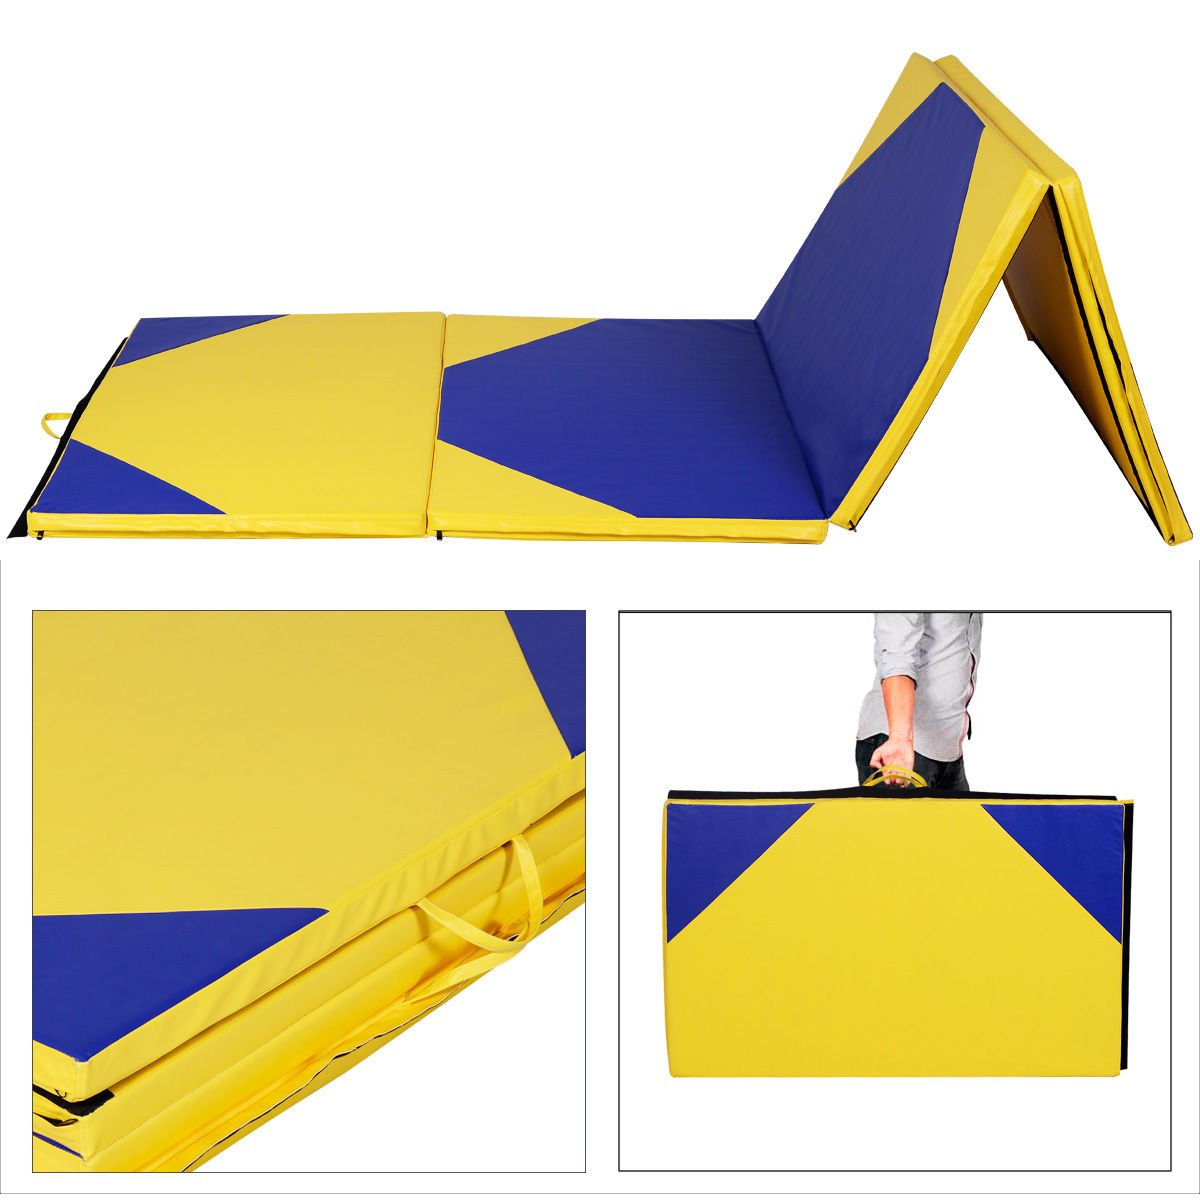 New Brand 1 PCS PU Leather Cover Gymnastics Mat Thick Folding Panel Gym Fitness Exercise Color Blue & Yellow Size 4'x10'x2'' by SASUPANSHOP